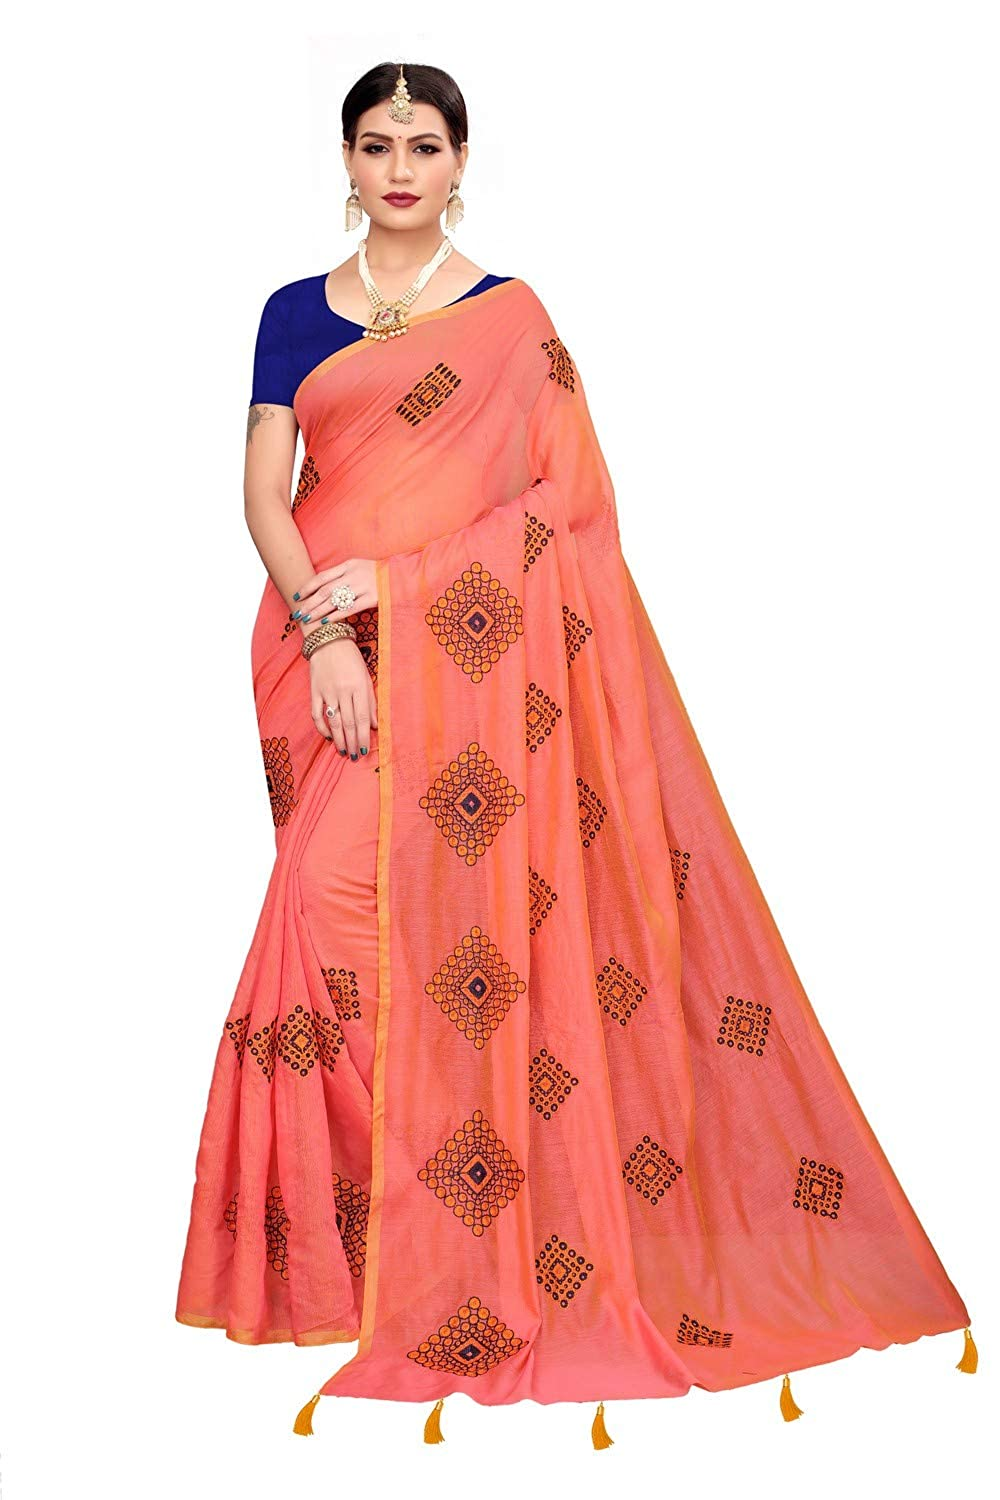 Women's Chanderi Cotton